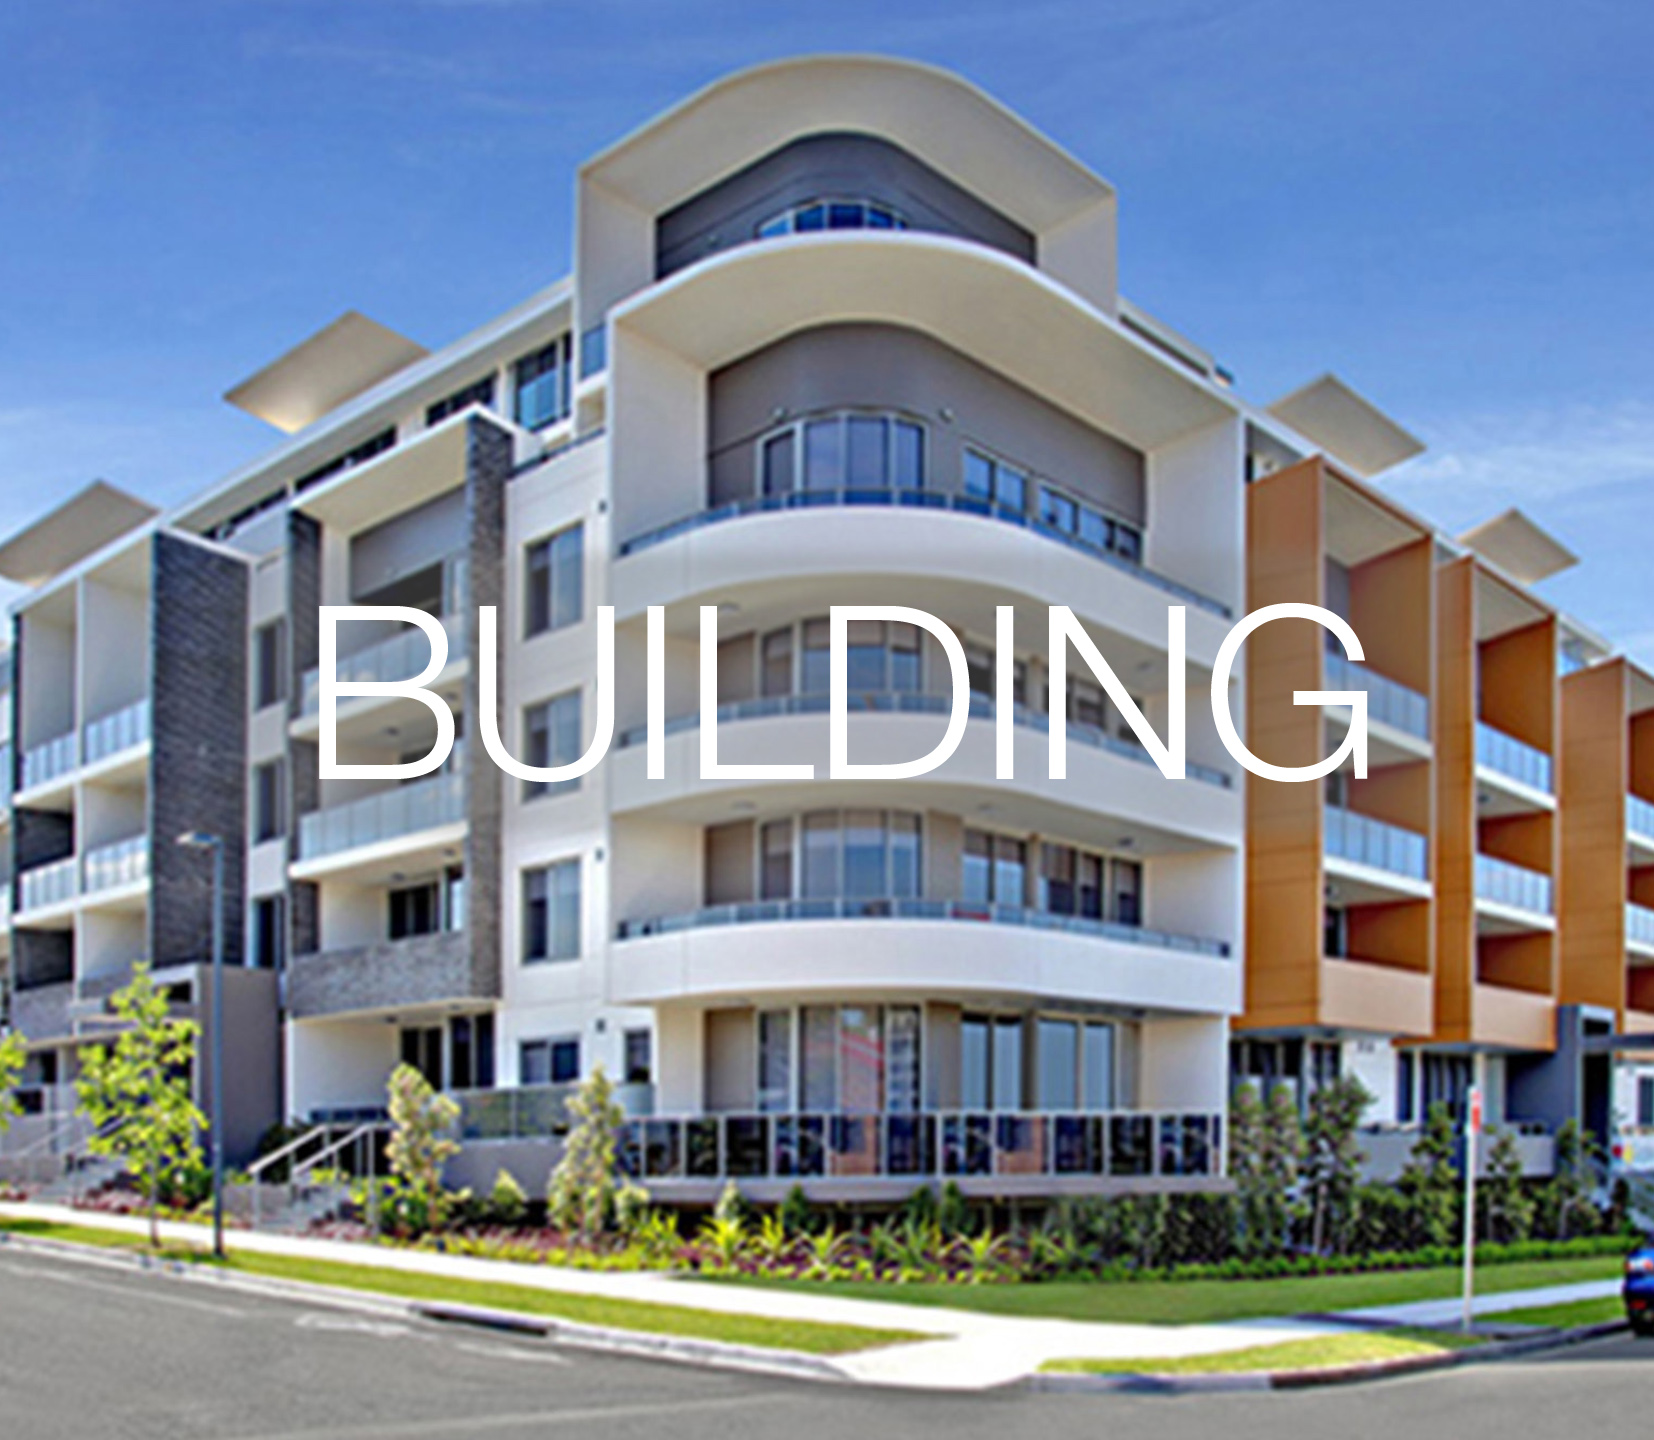 http://www.cityplan.com.au/building-projects/